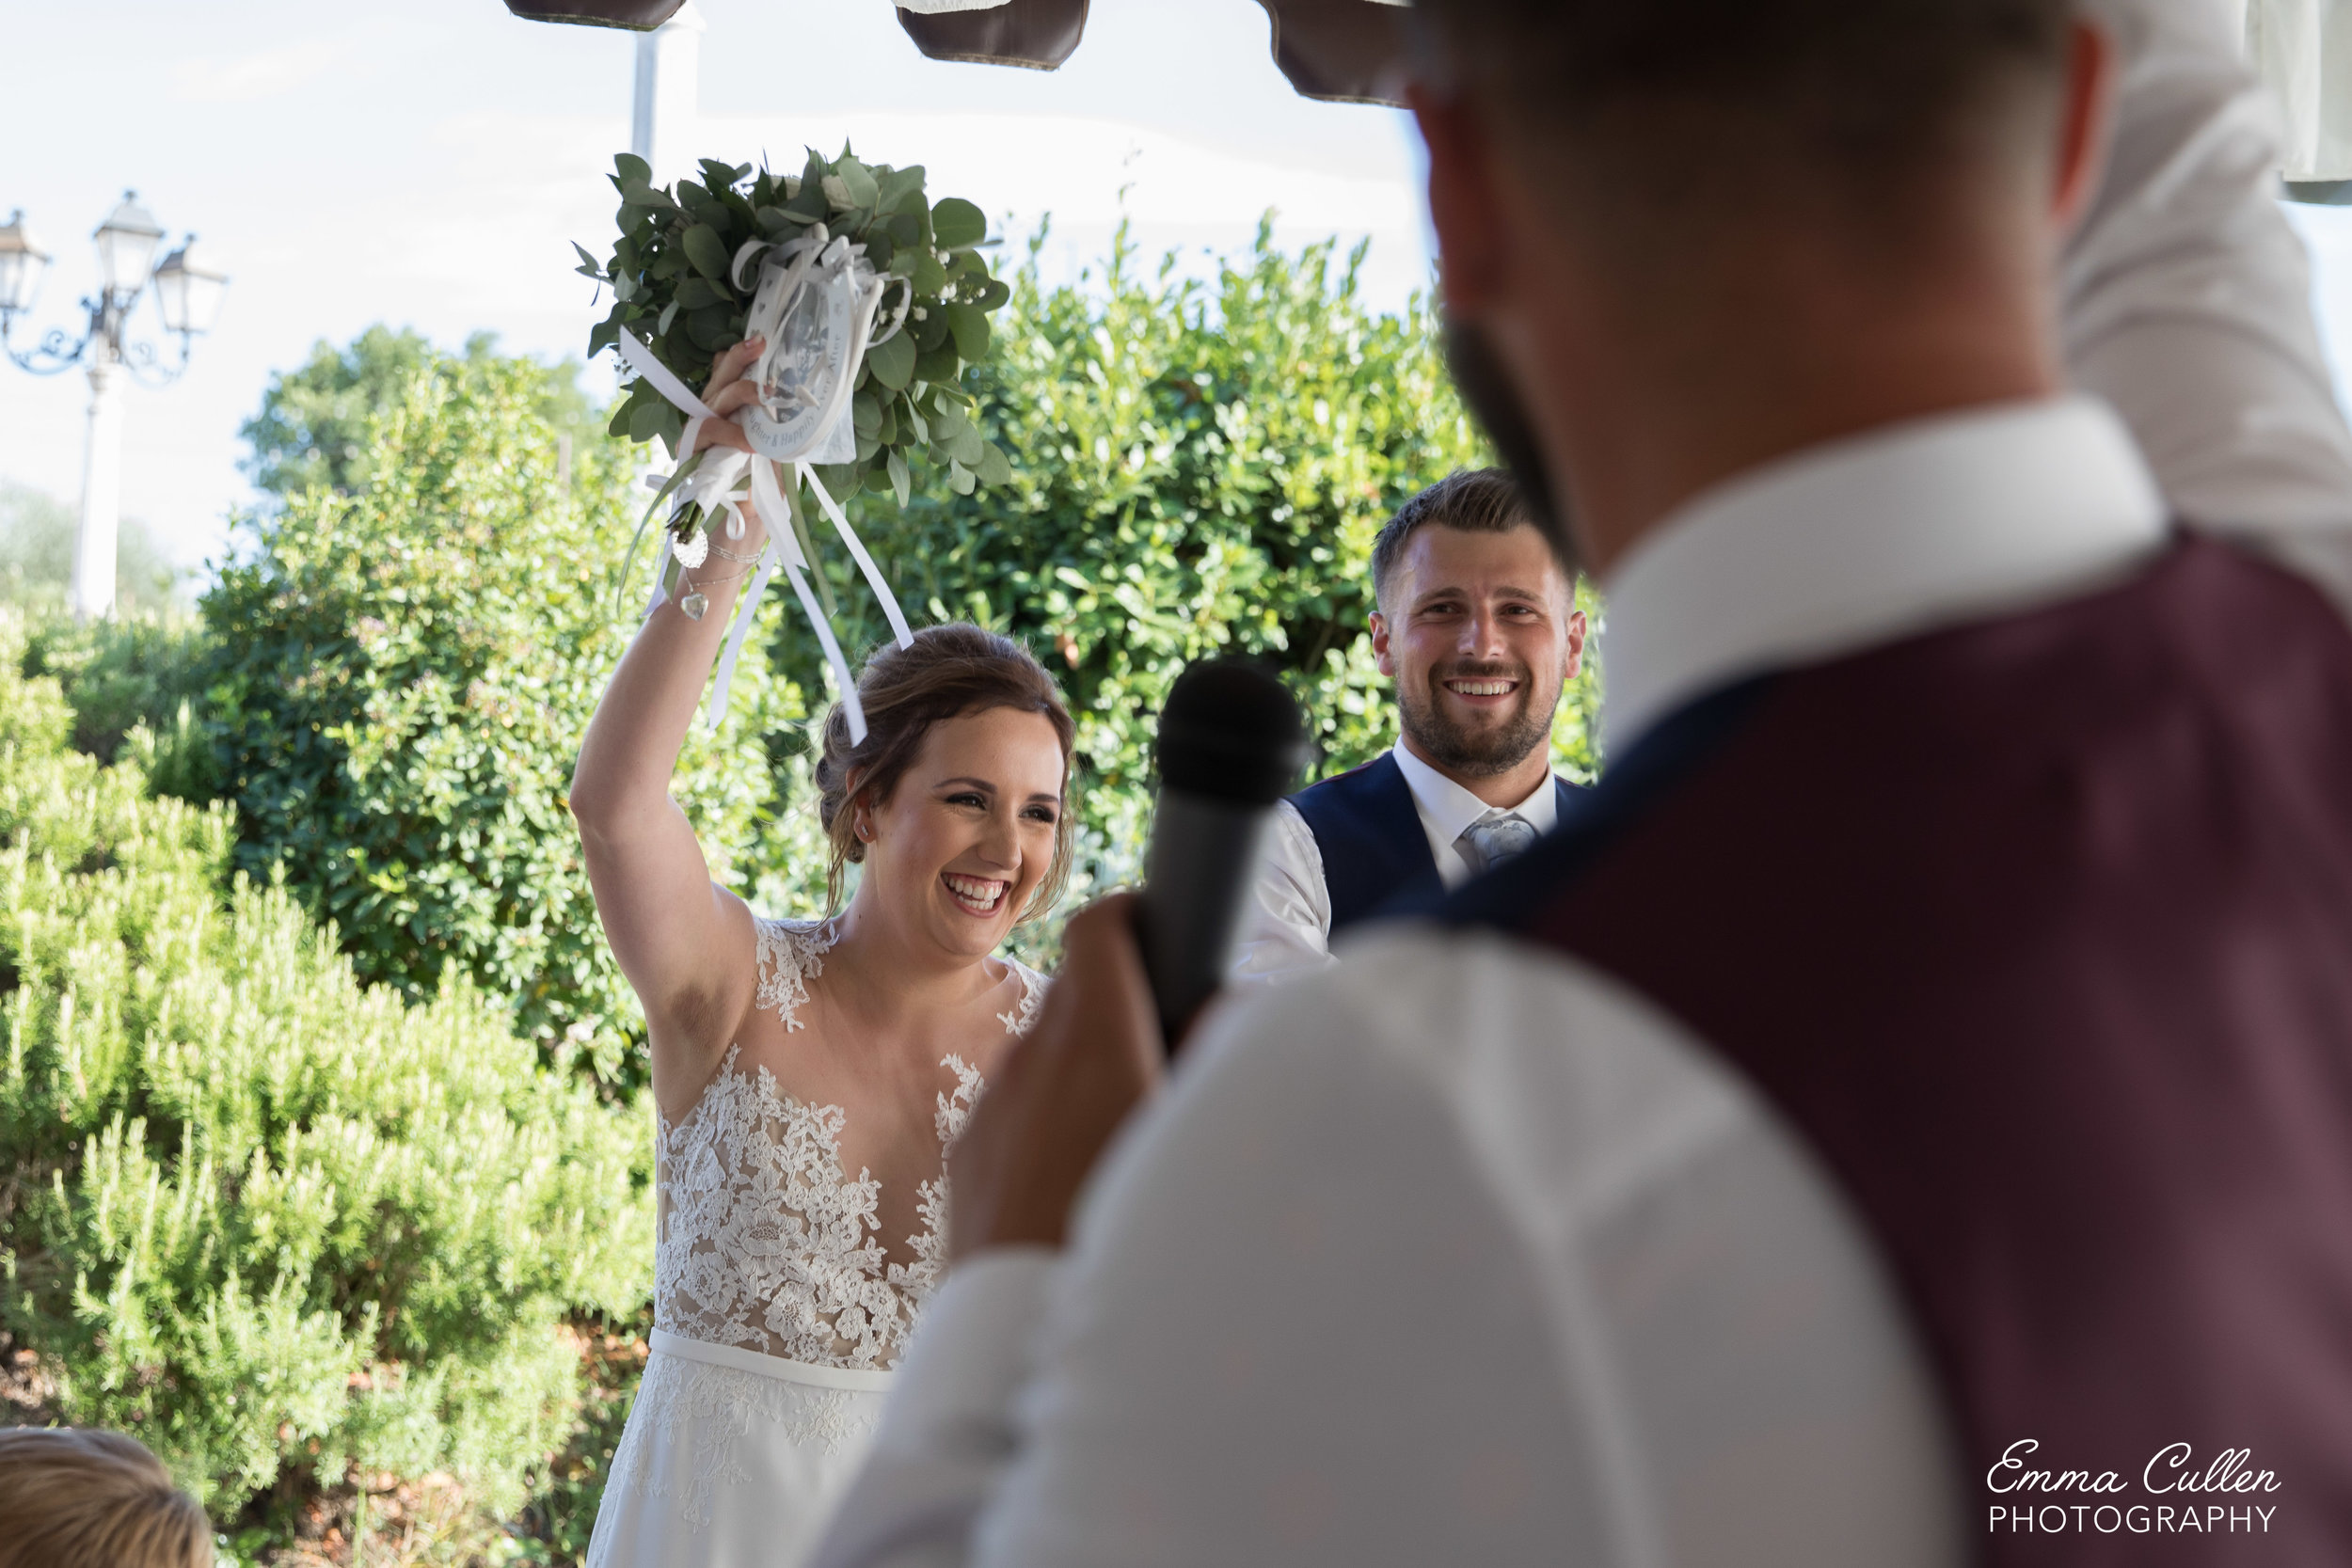 SM; Reynolds Italy Wedding 2019-25.jpg